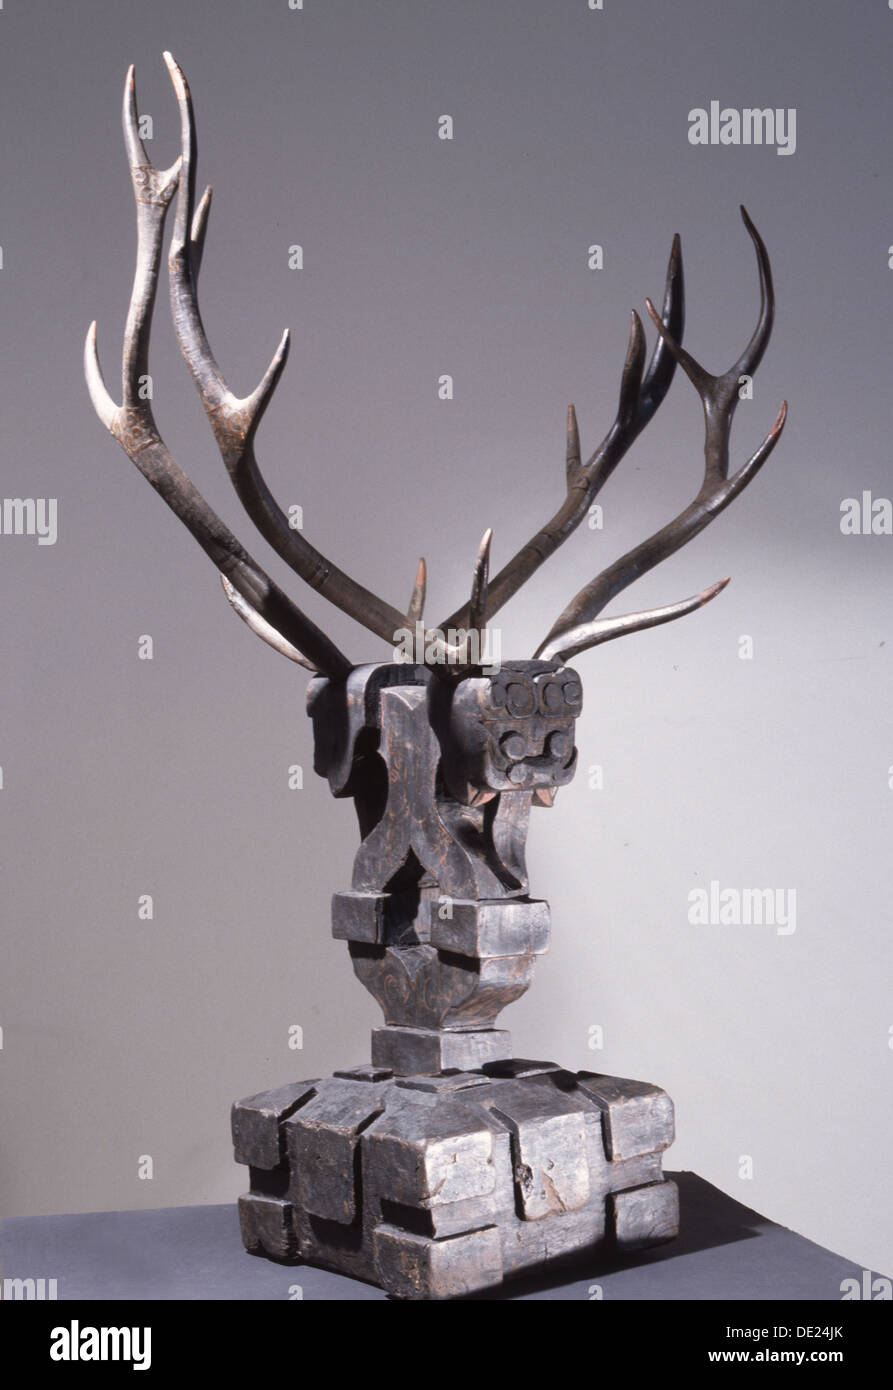 Wooden sculpture of mythical being with deer antlers. - Stock Image